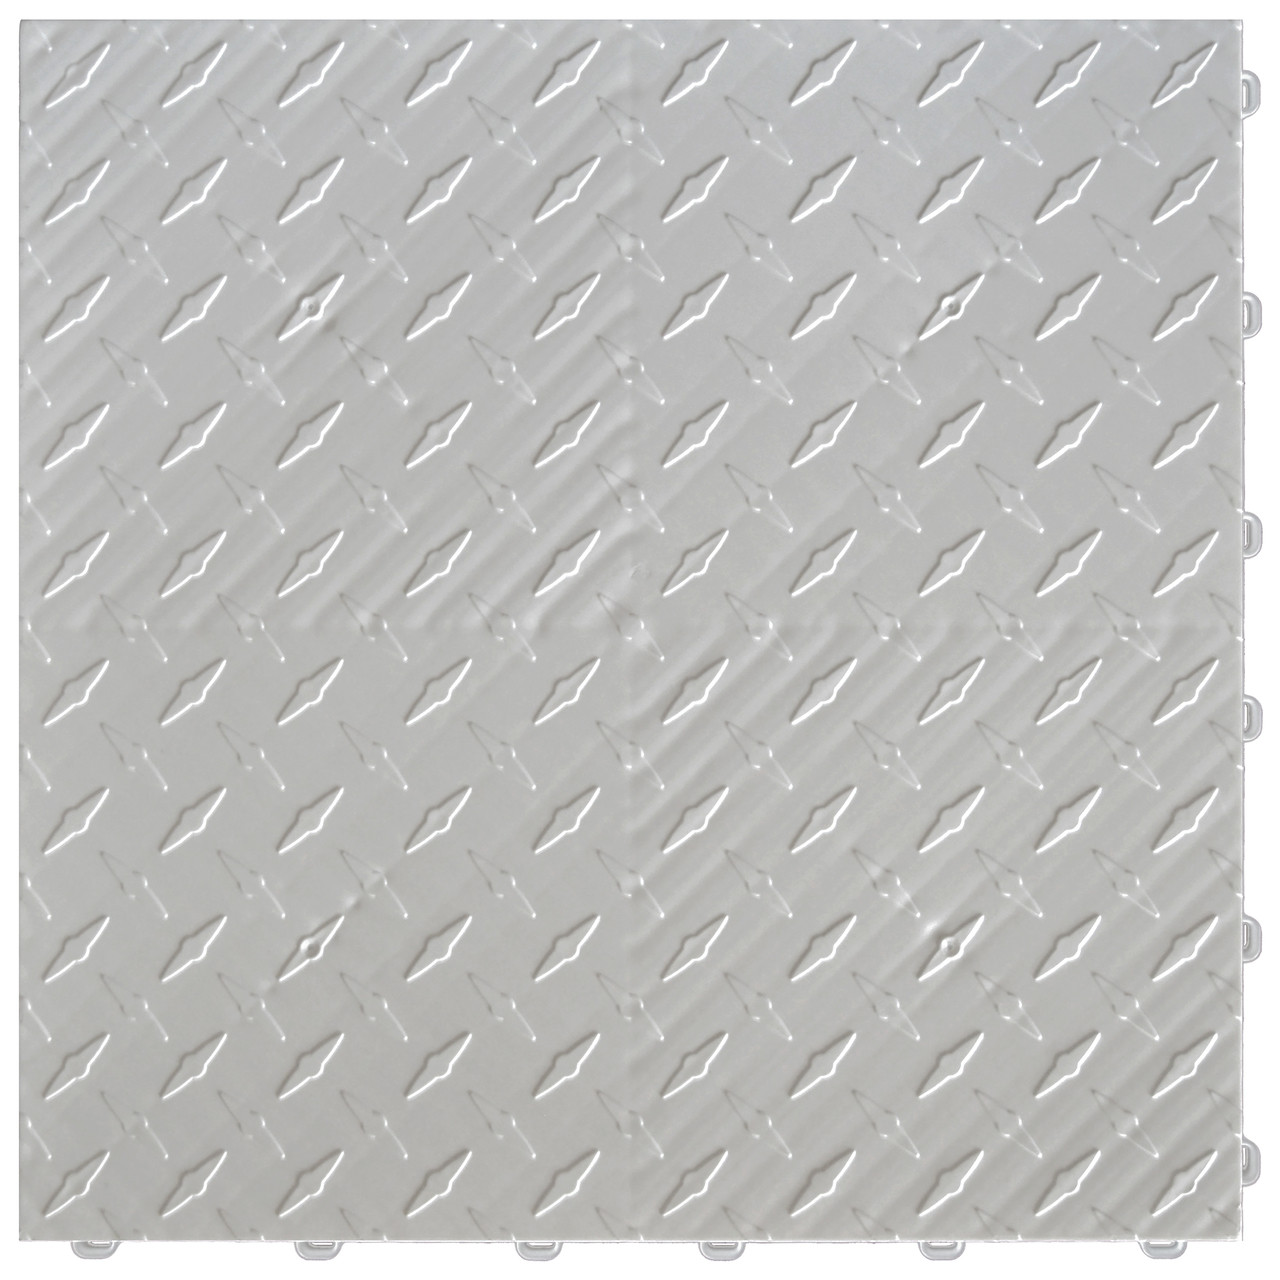 "Pearl Silver DiamondTrax - SALE PRICE ONLY $3.96 PER SQ FT Tile Size: 15.75"" x 15.75"" x .75 (1 Tile = 1.72 sq ft)"